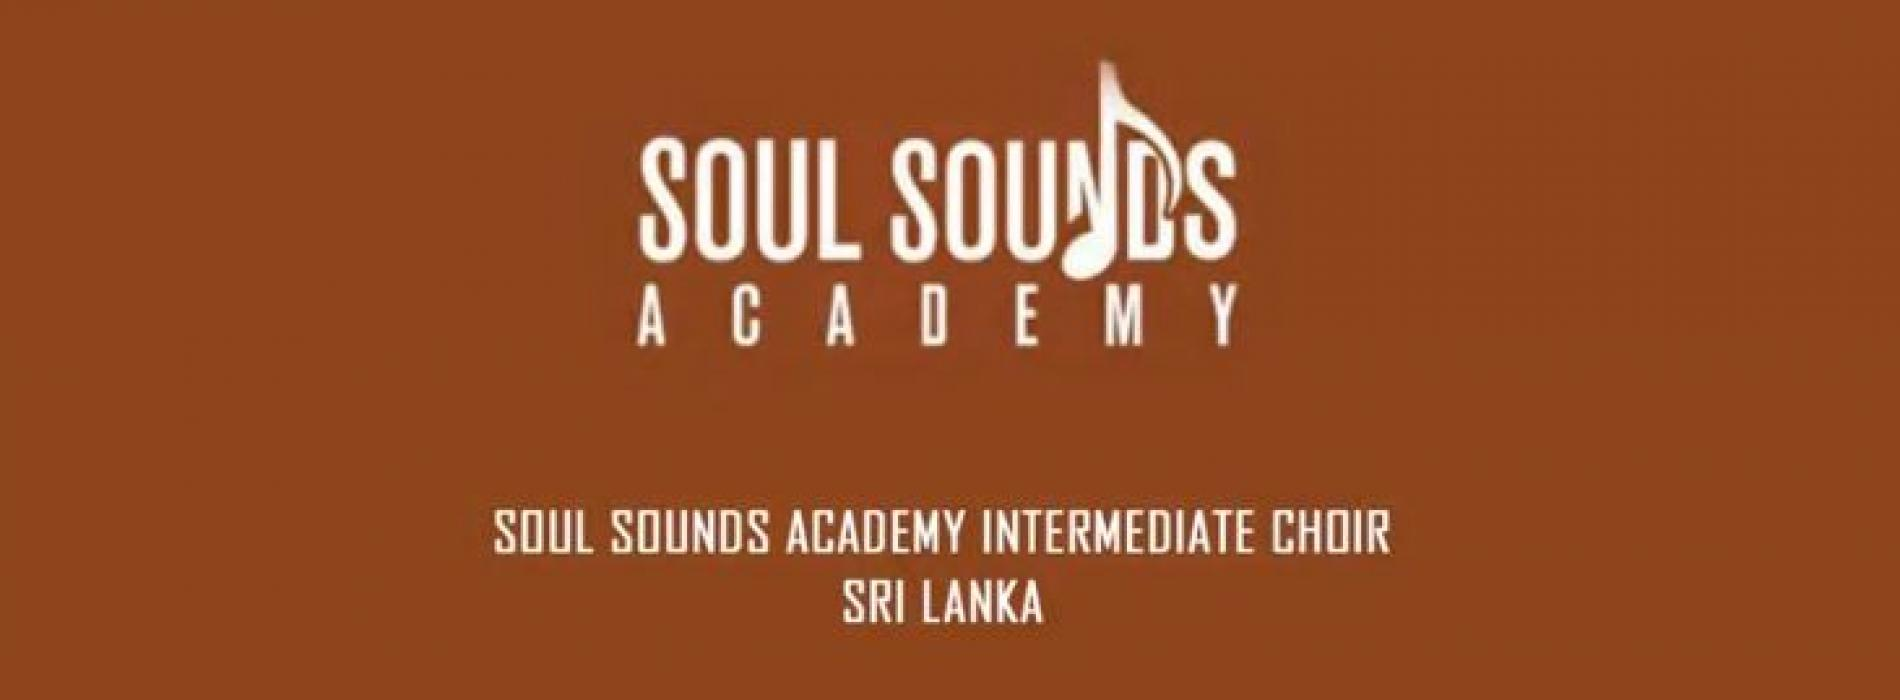 "New Music : Soul Sounds Academy Intermediate Choir (Sri Lanka) – ""Ai Kale Adare"""